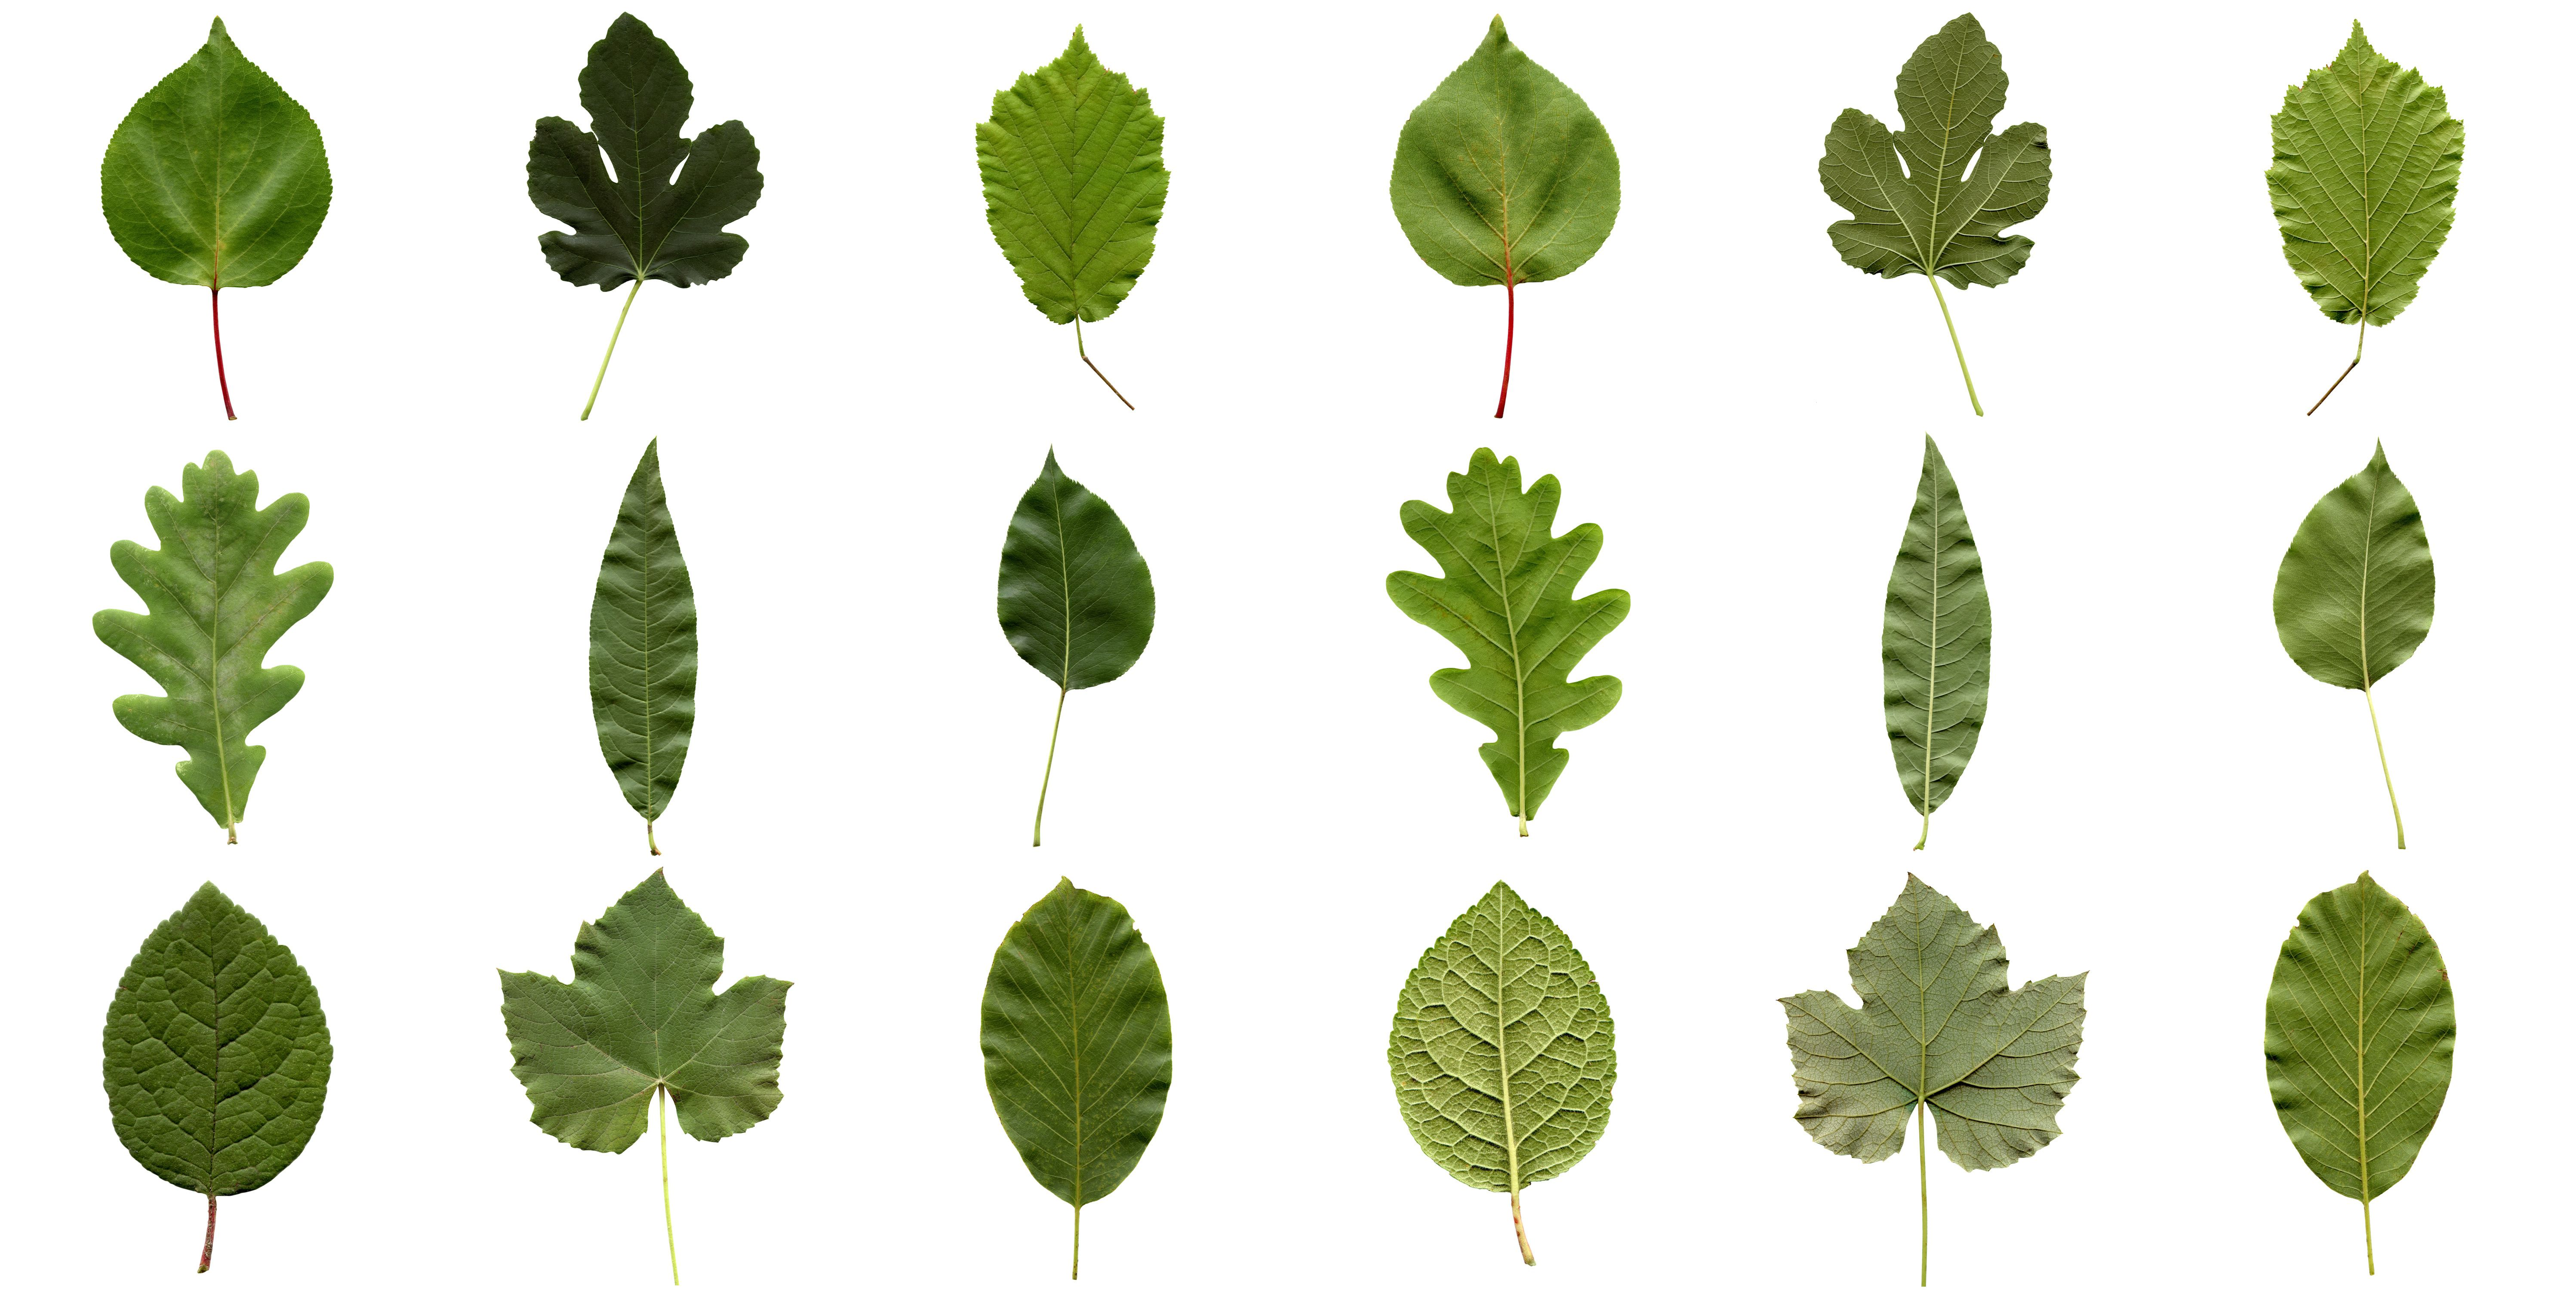 Why Do Leaves Have Such Different Shapes?